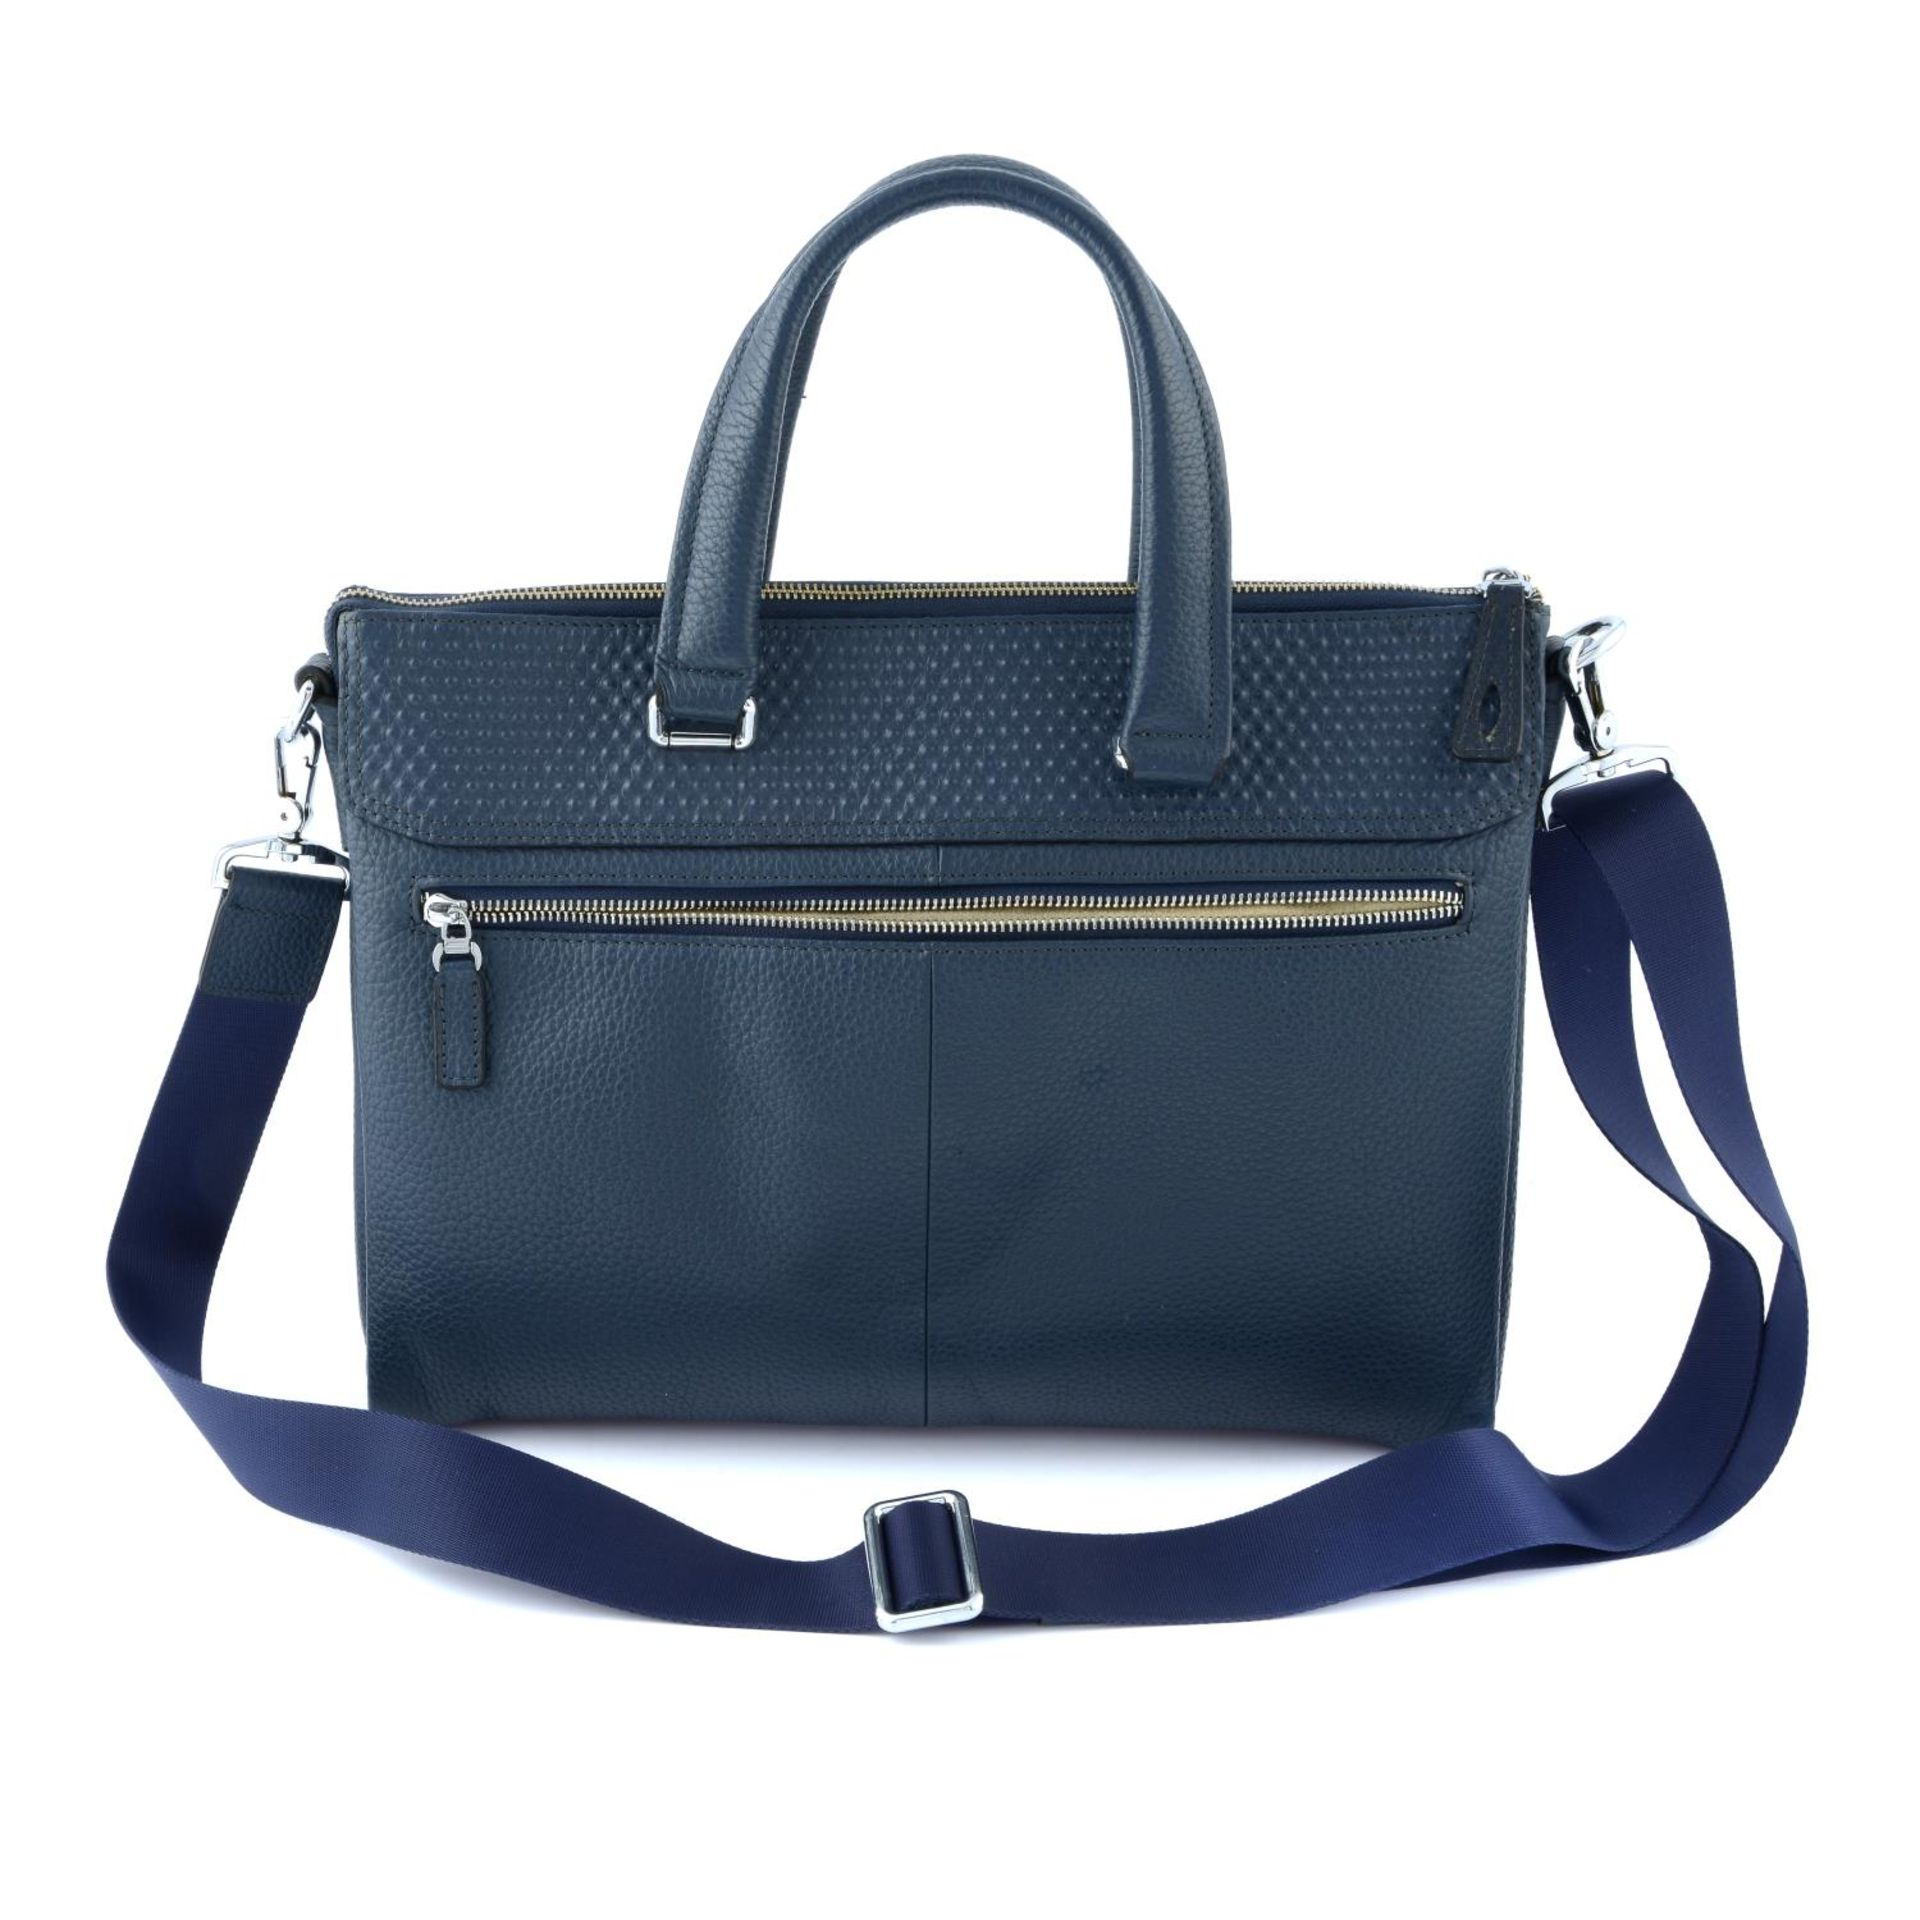 BURBERRY - a blue leather briefcase. - Image 2 of 5